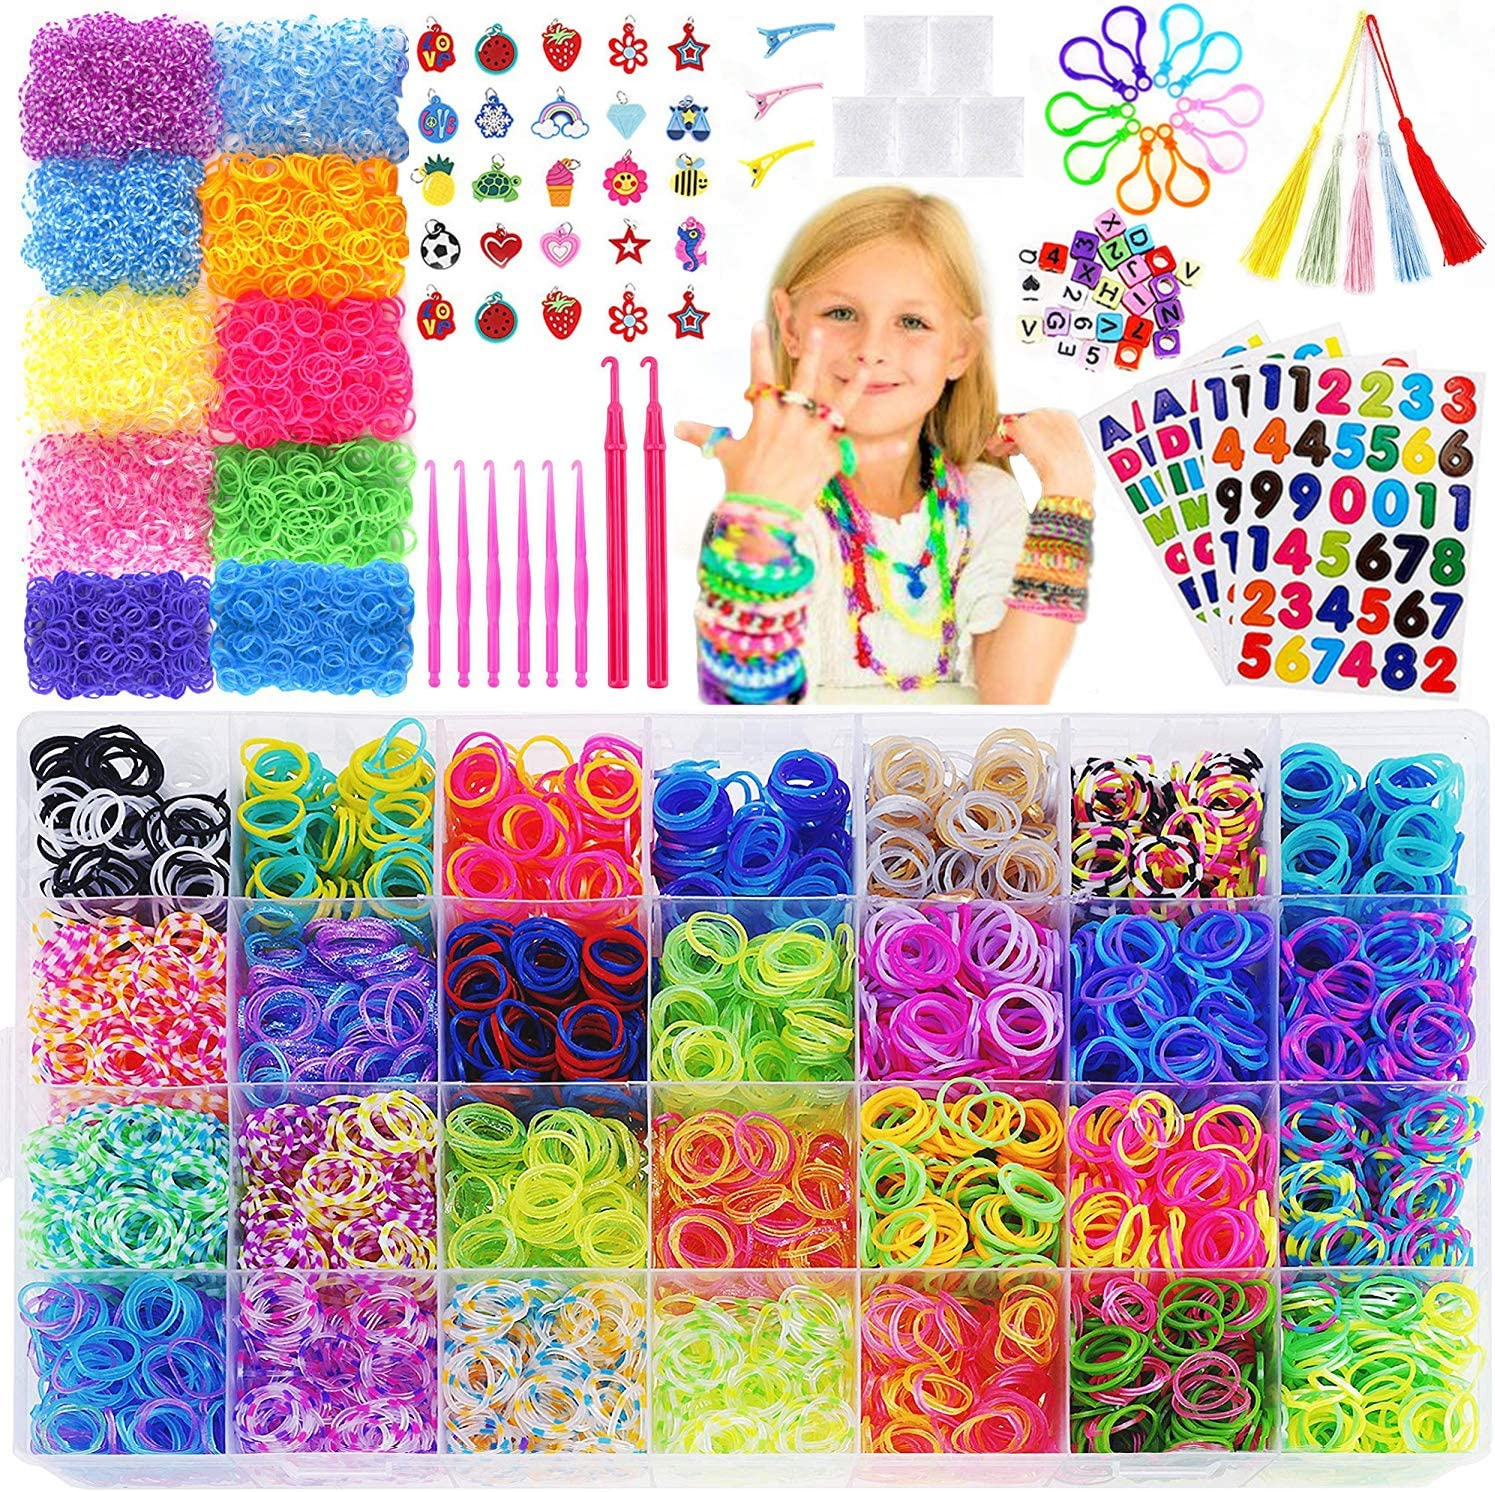 300 CHANGING COLOUR LOOM BANDS LOOM CRAZY WITH S CLIPS AND HOOK